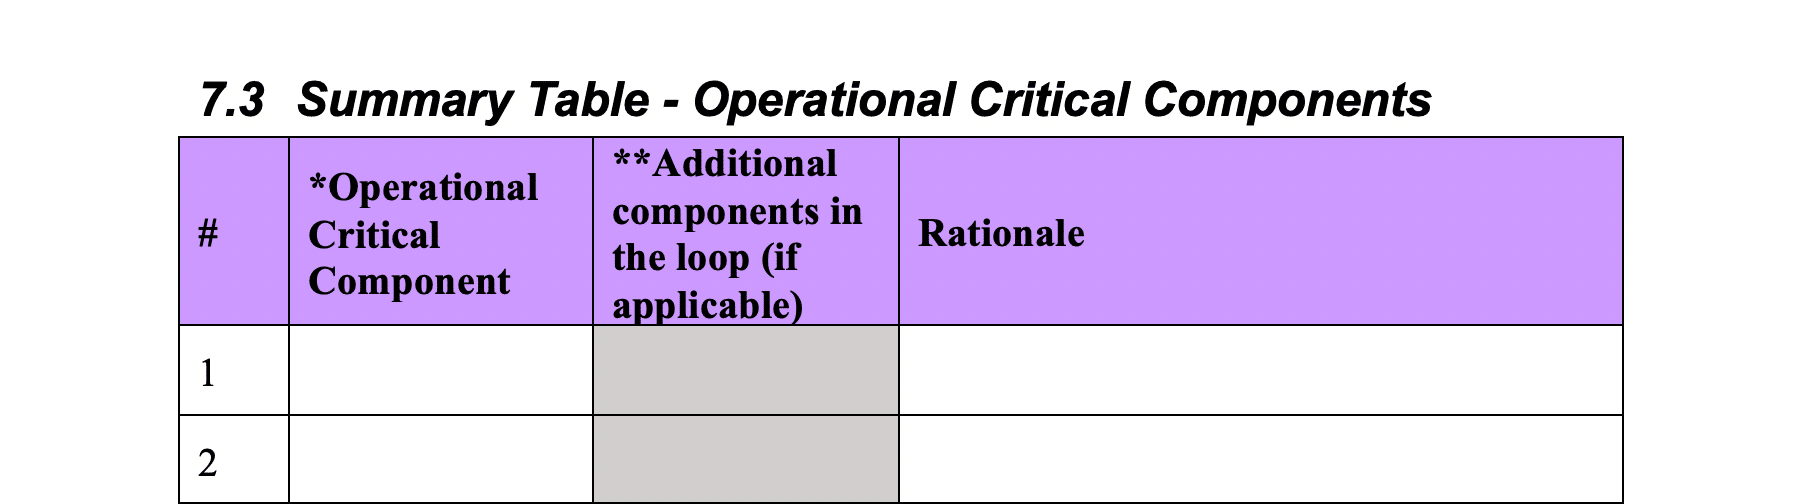 Summary Table Operational Critical Components GetReskilled